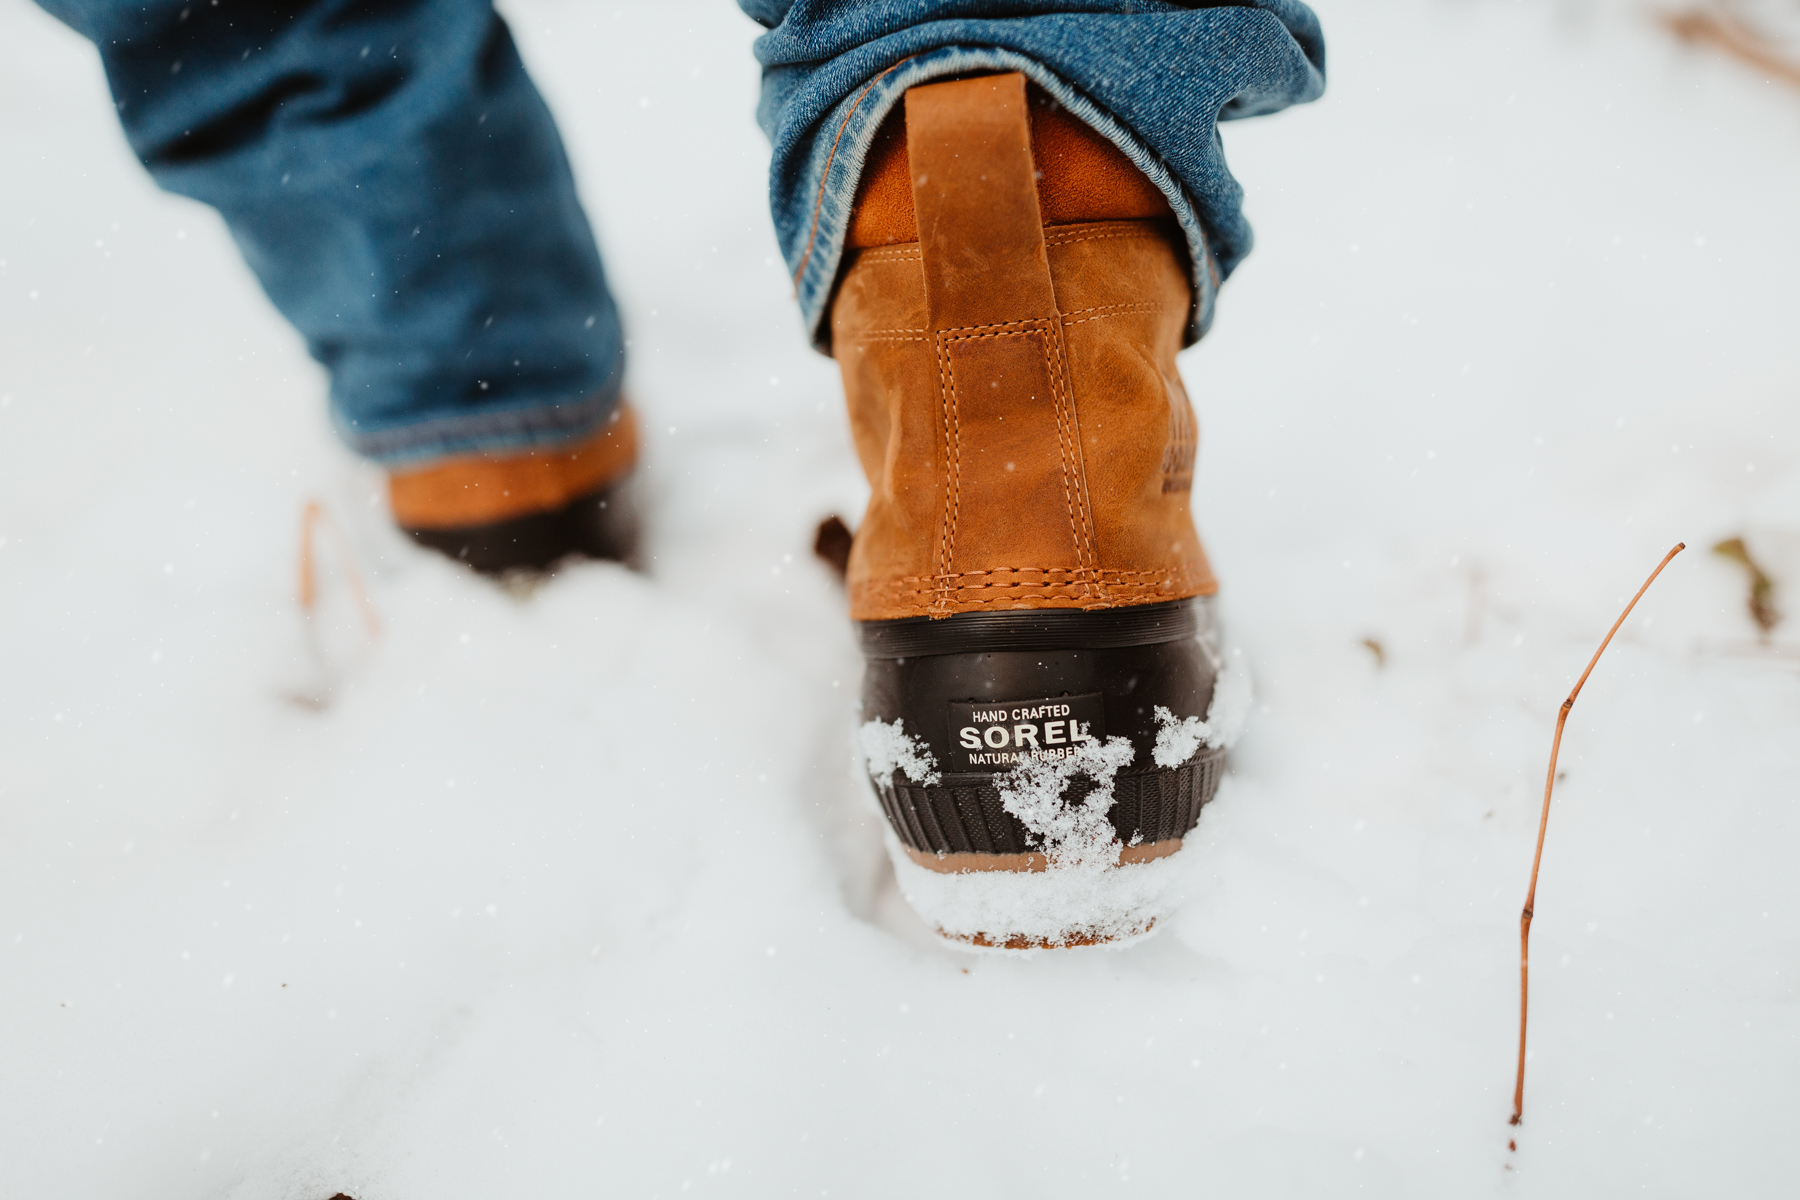 Sorel Boots - Kelly in the City